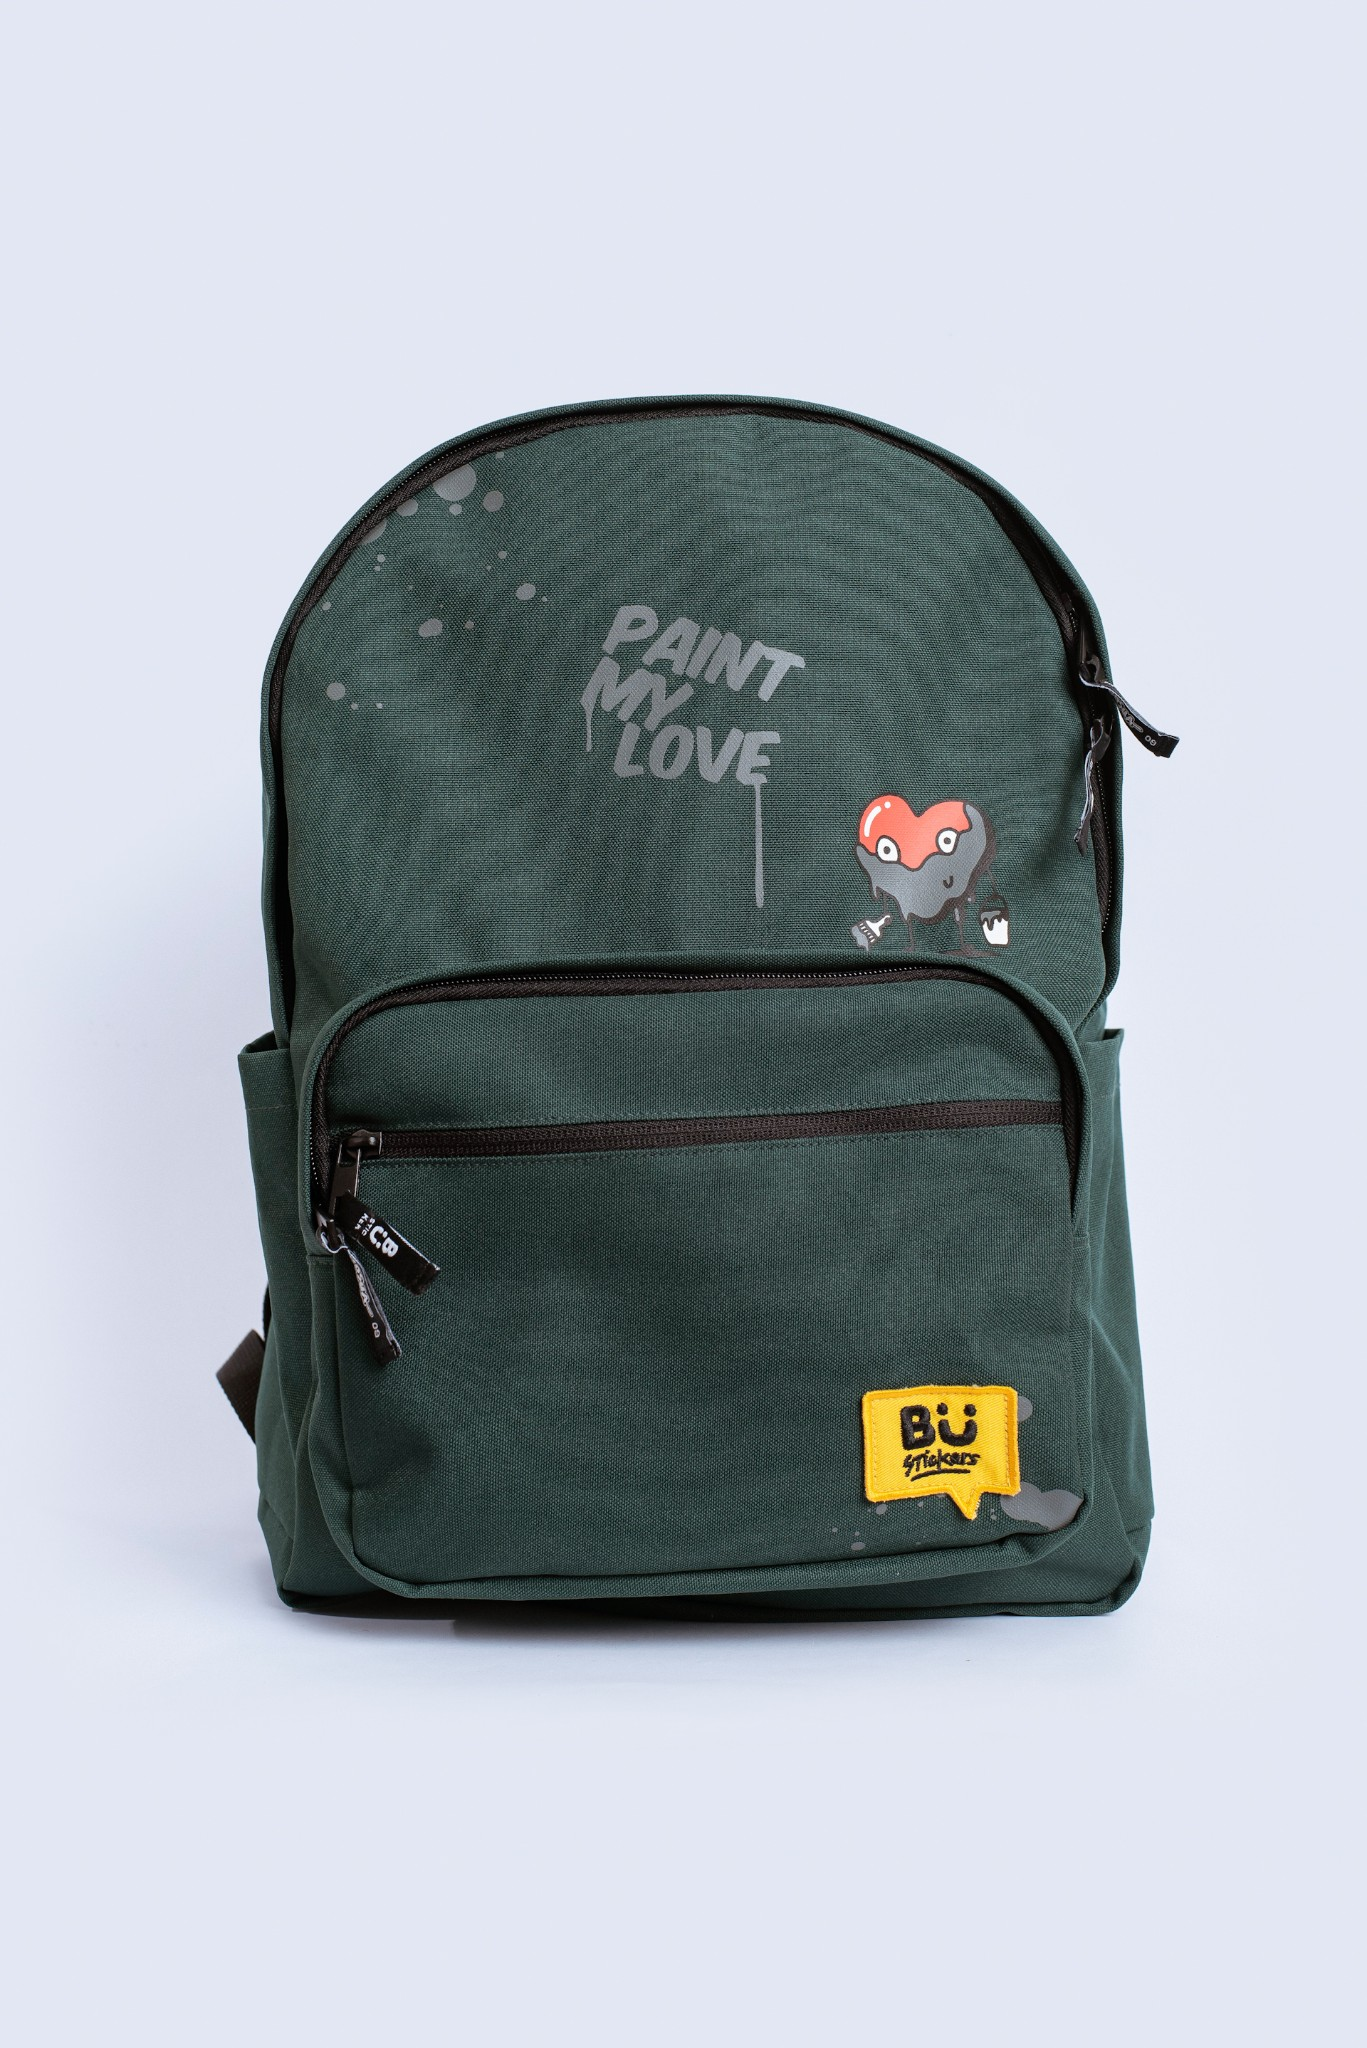 TÚI UNISEX BASIC PAINT MY LOVE